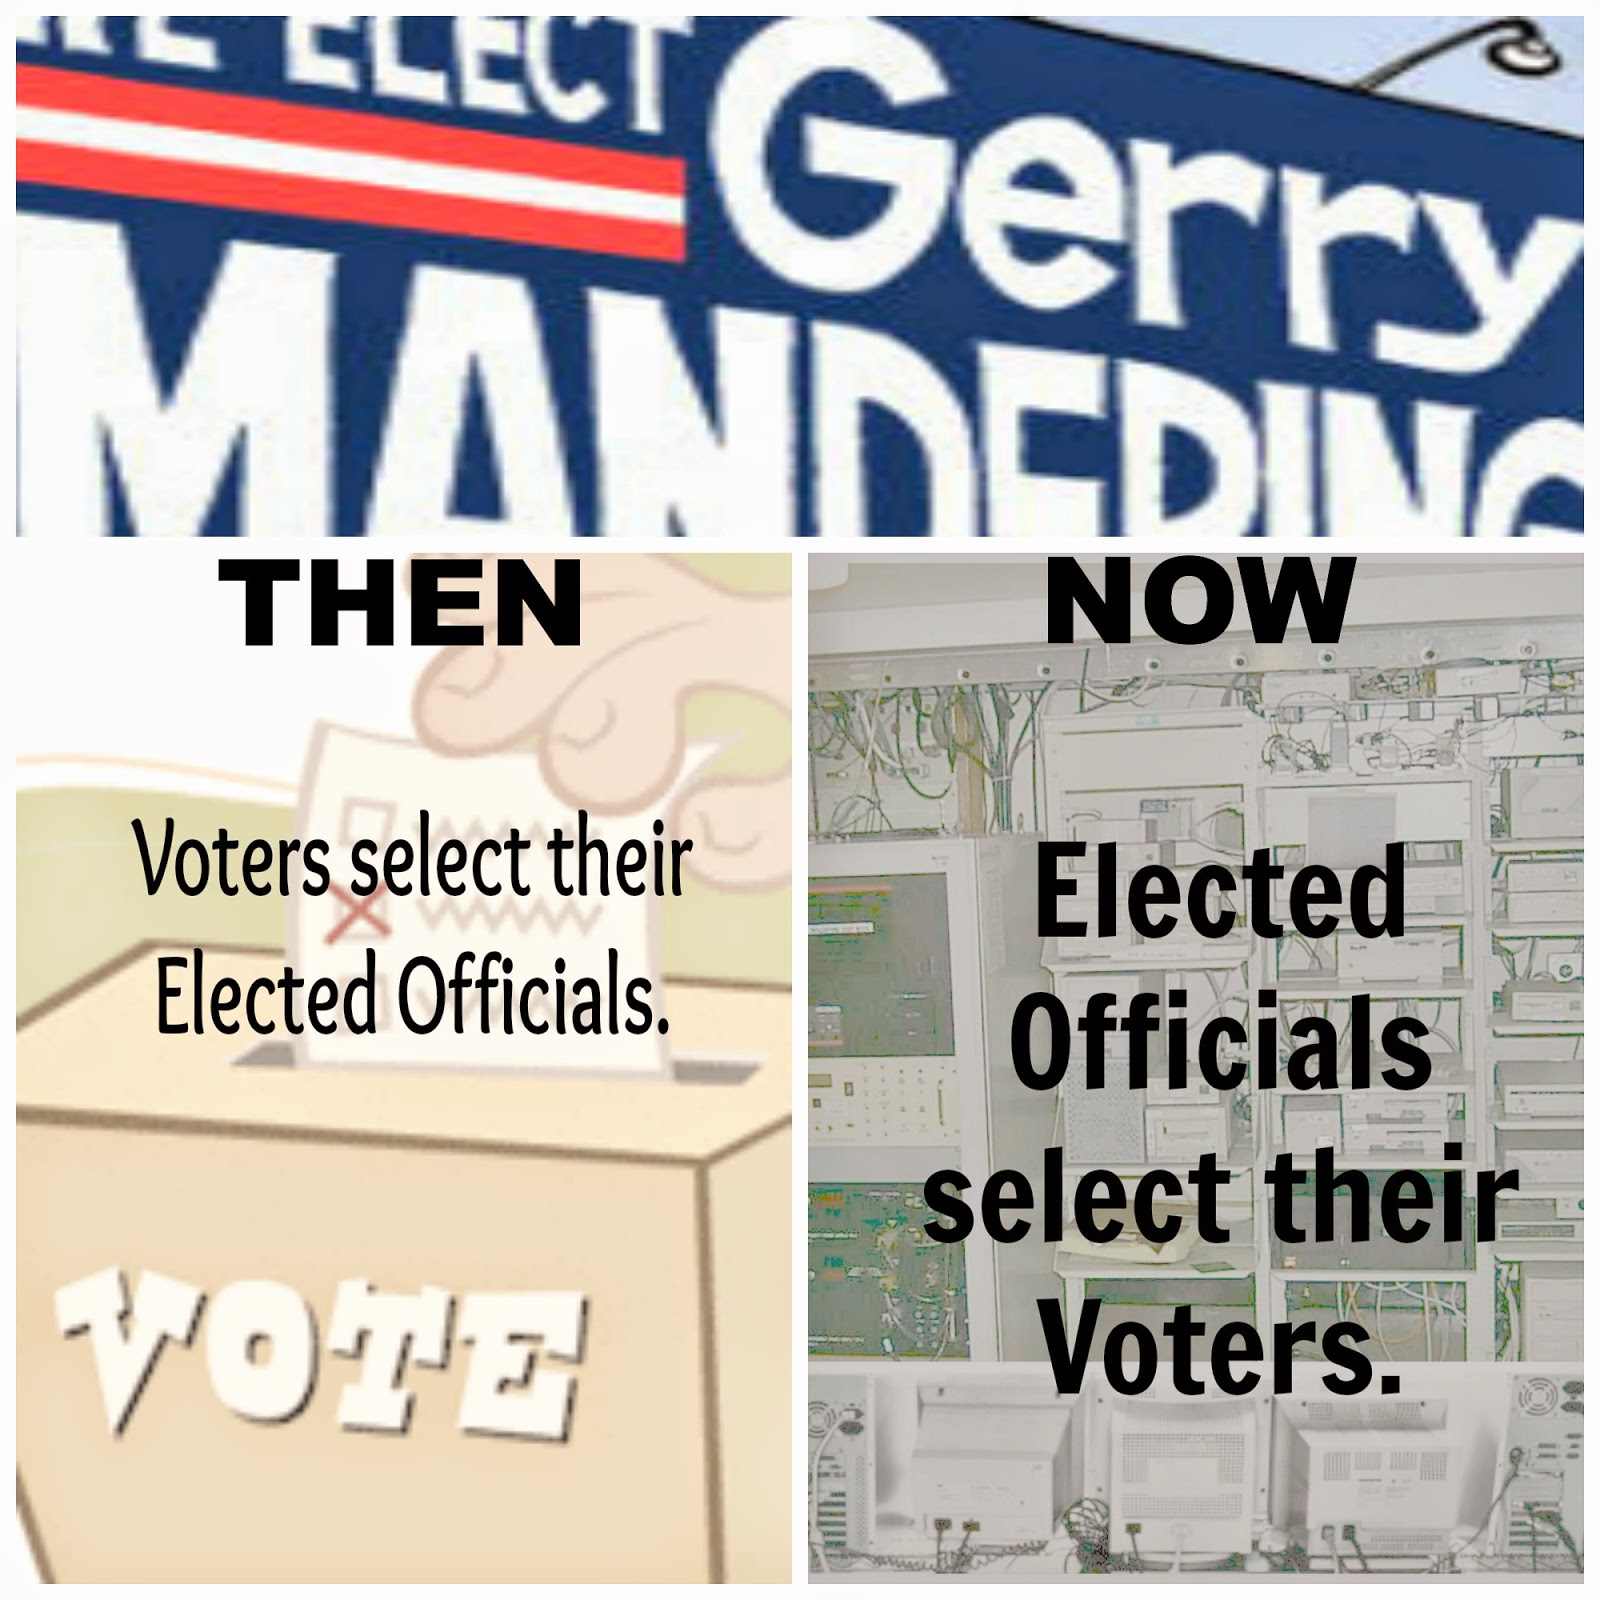 Gerrymandering NOW: Elected Officials select their Voters.